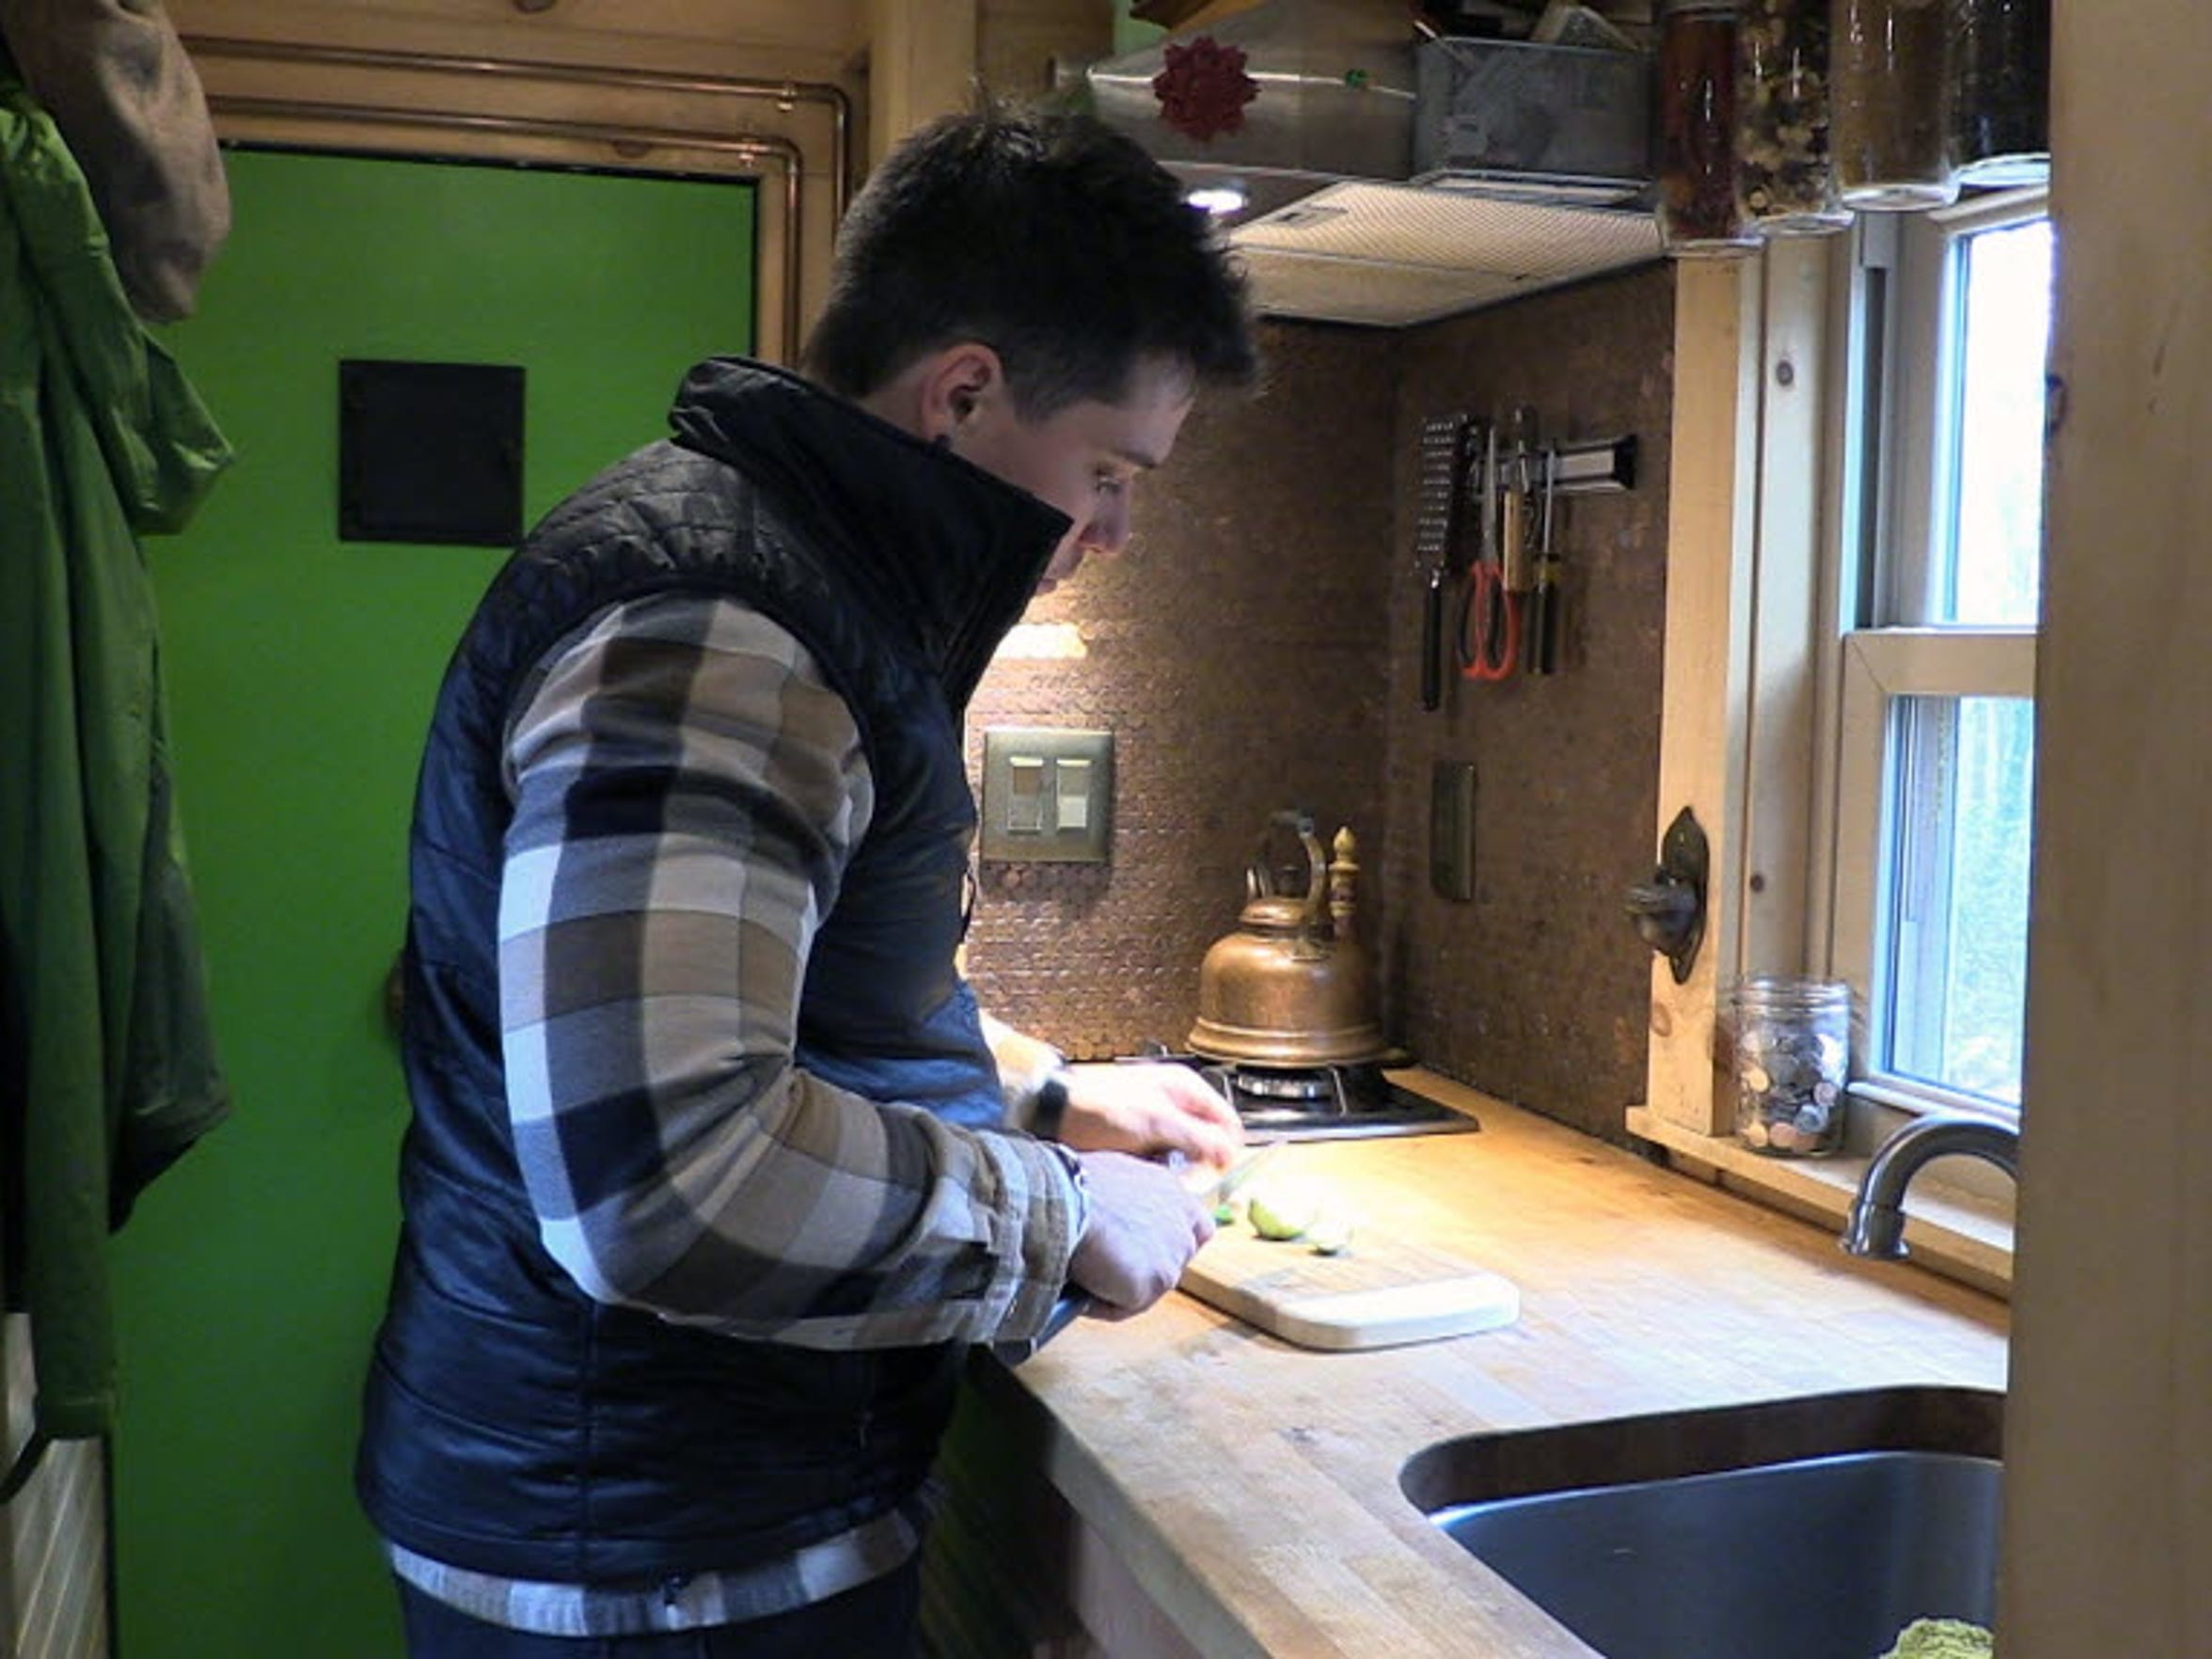 Brad Allain shows how he cooks inside his tiny house.